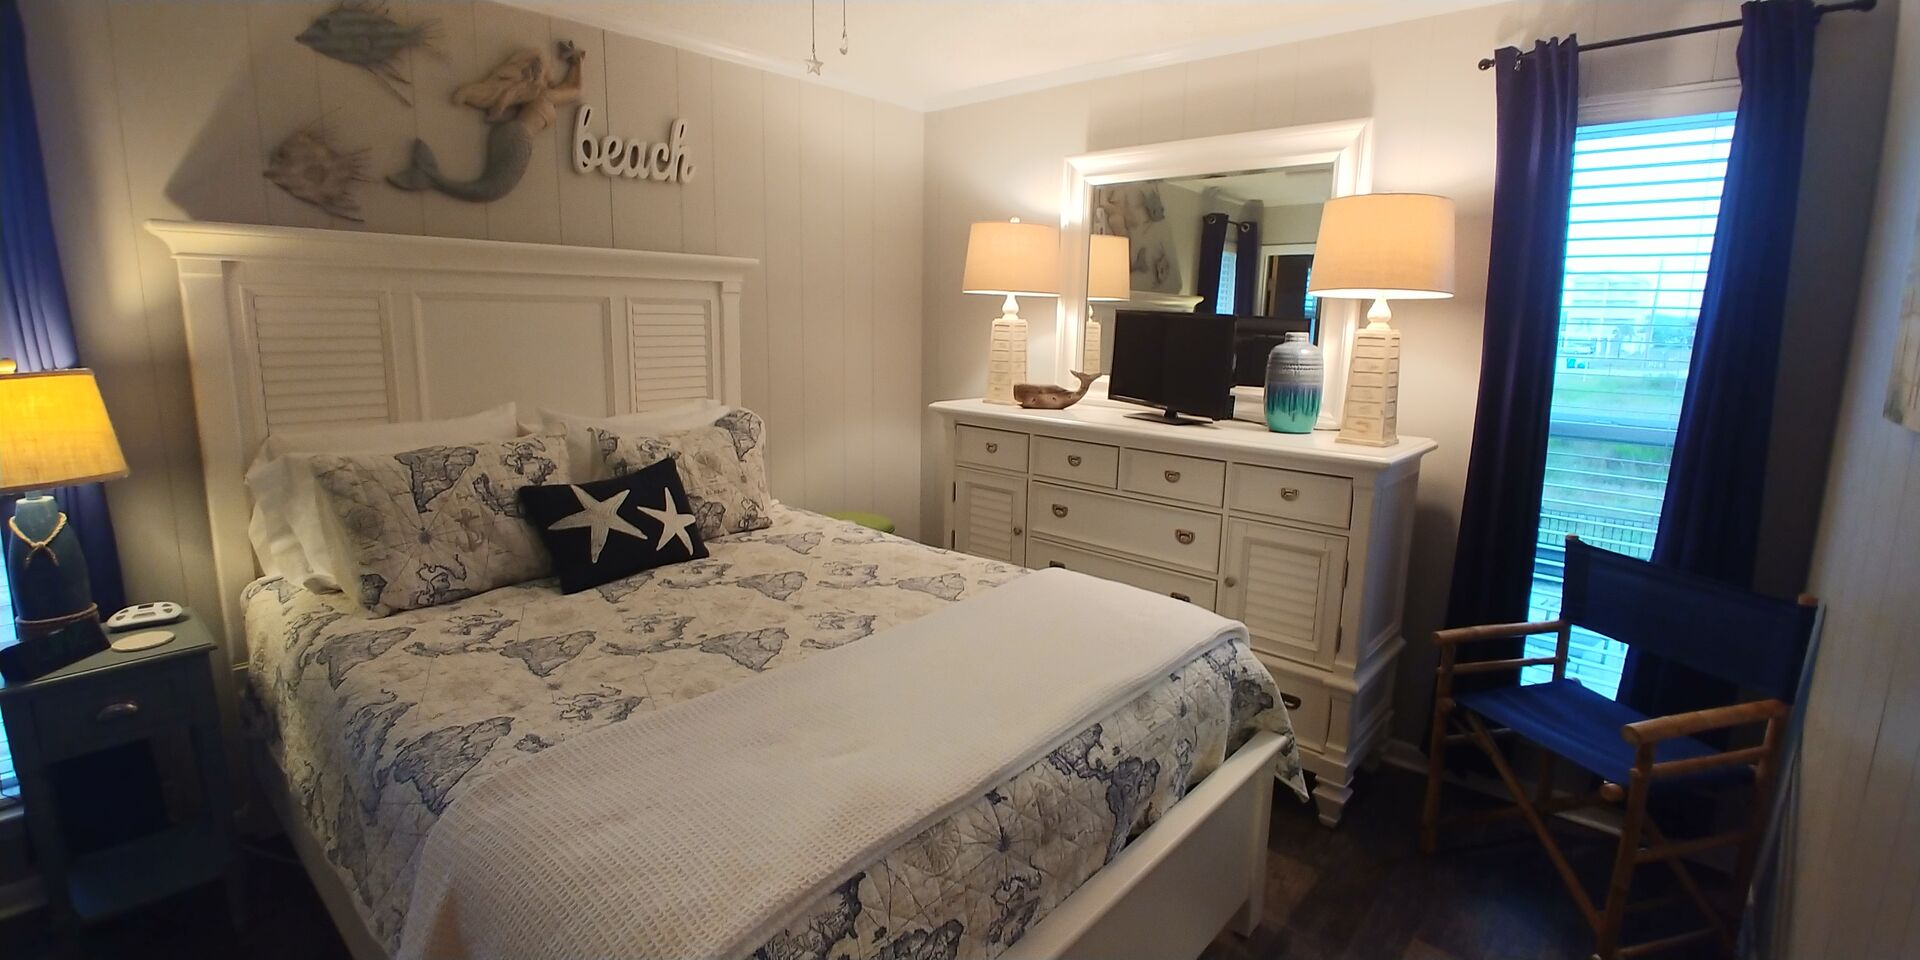 Large Bed, Drawer Dresser, Mirror, Lamps, and Chair.